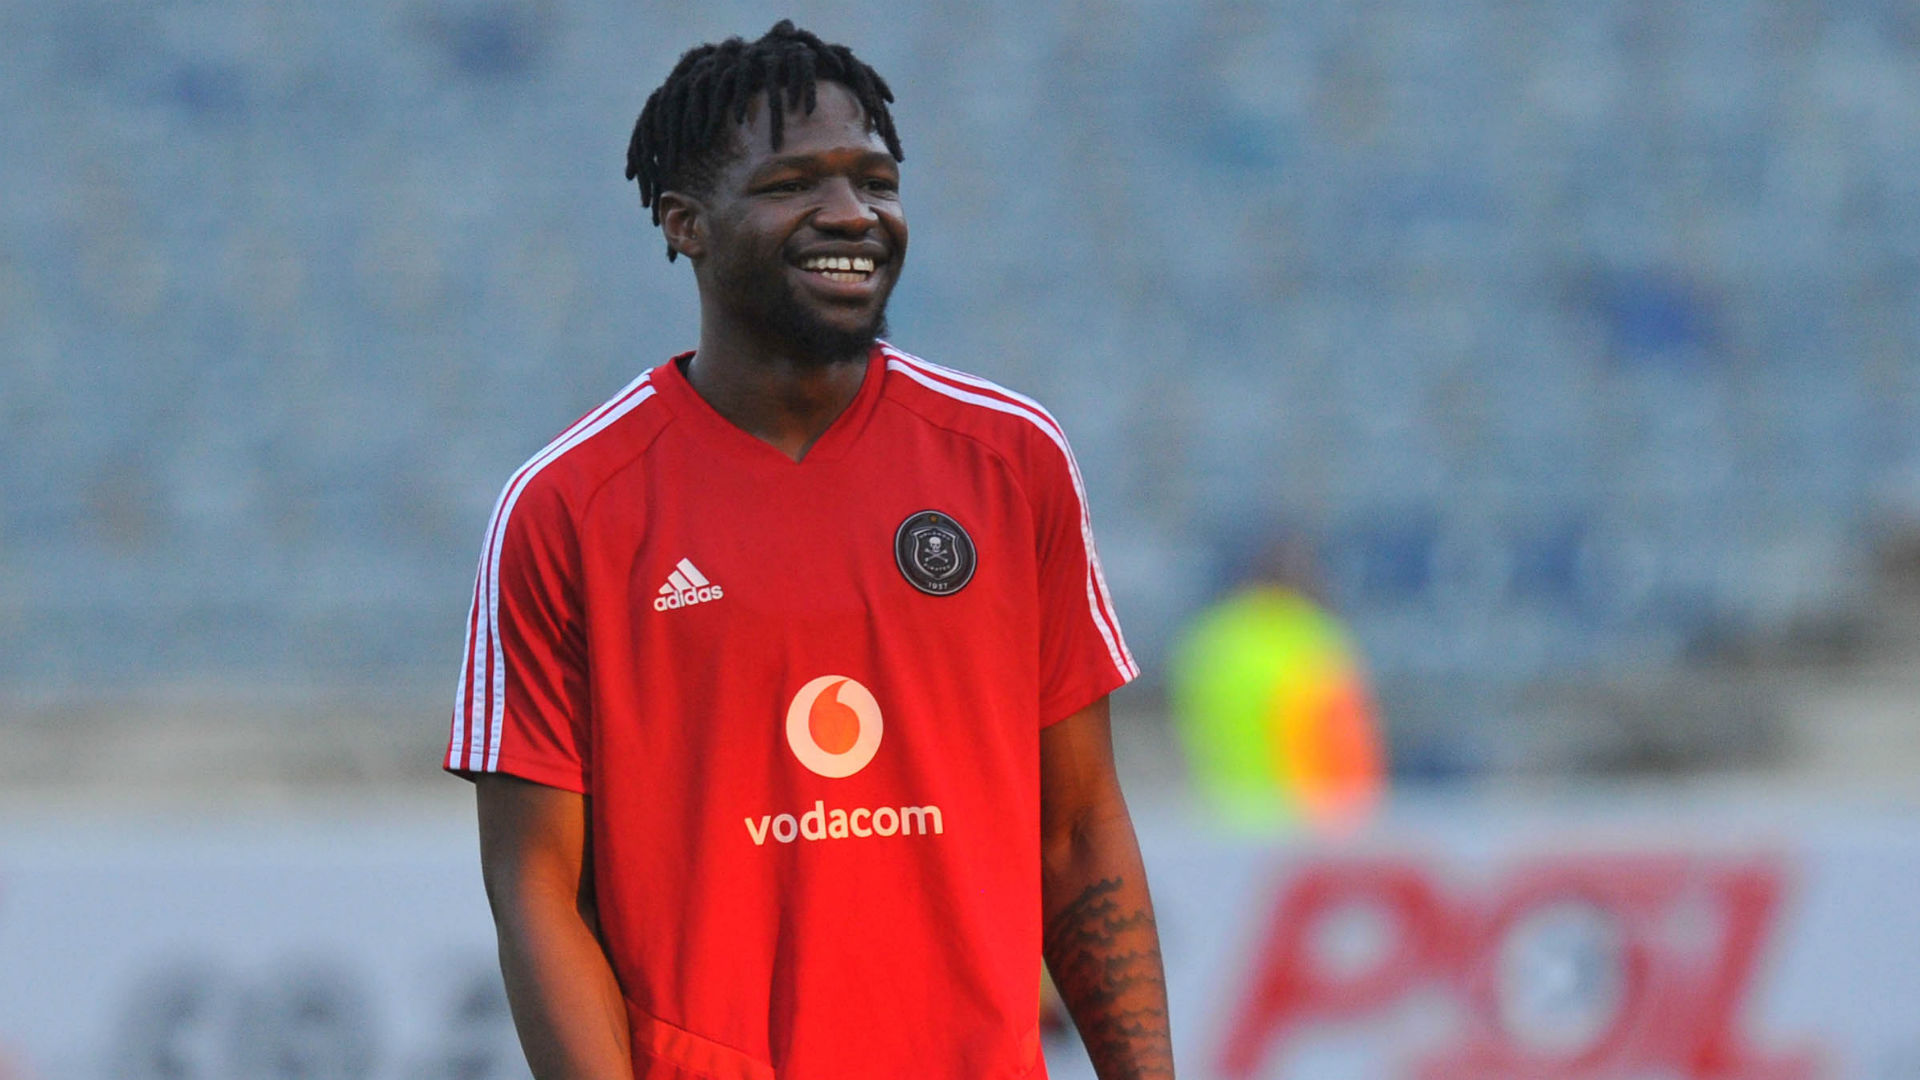 Hard working Mabasa is rewarded for not being a selfish player - Orlando Pirates coach Mokwena